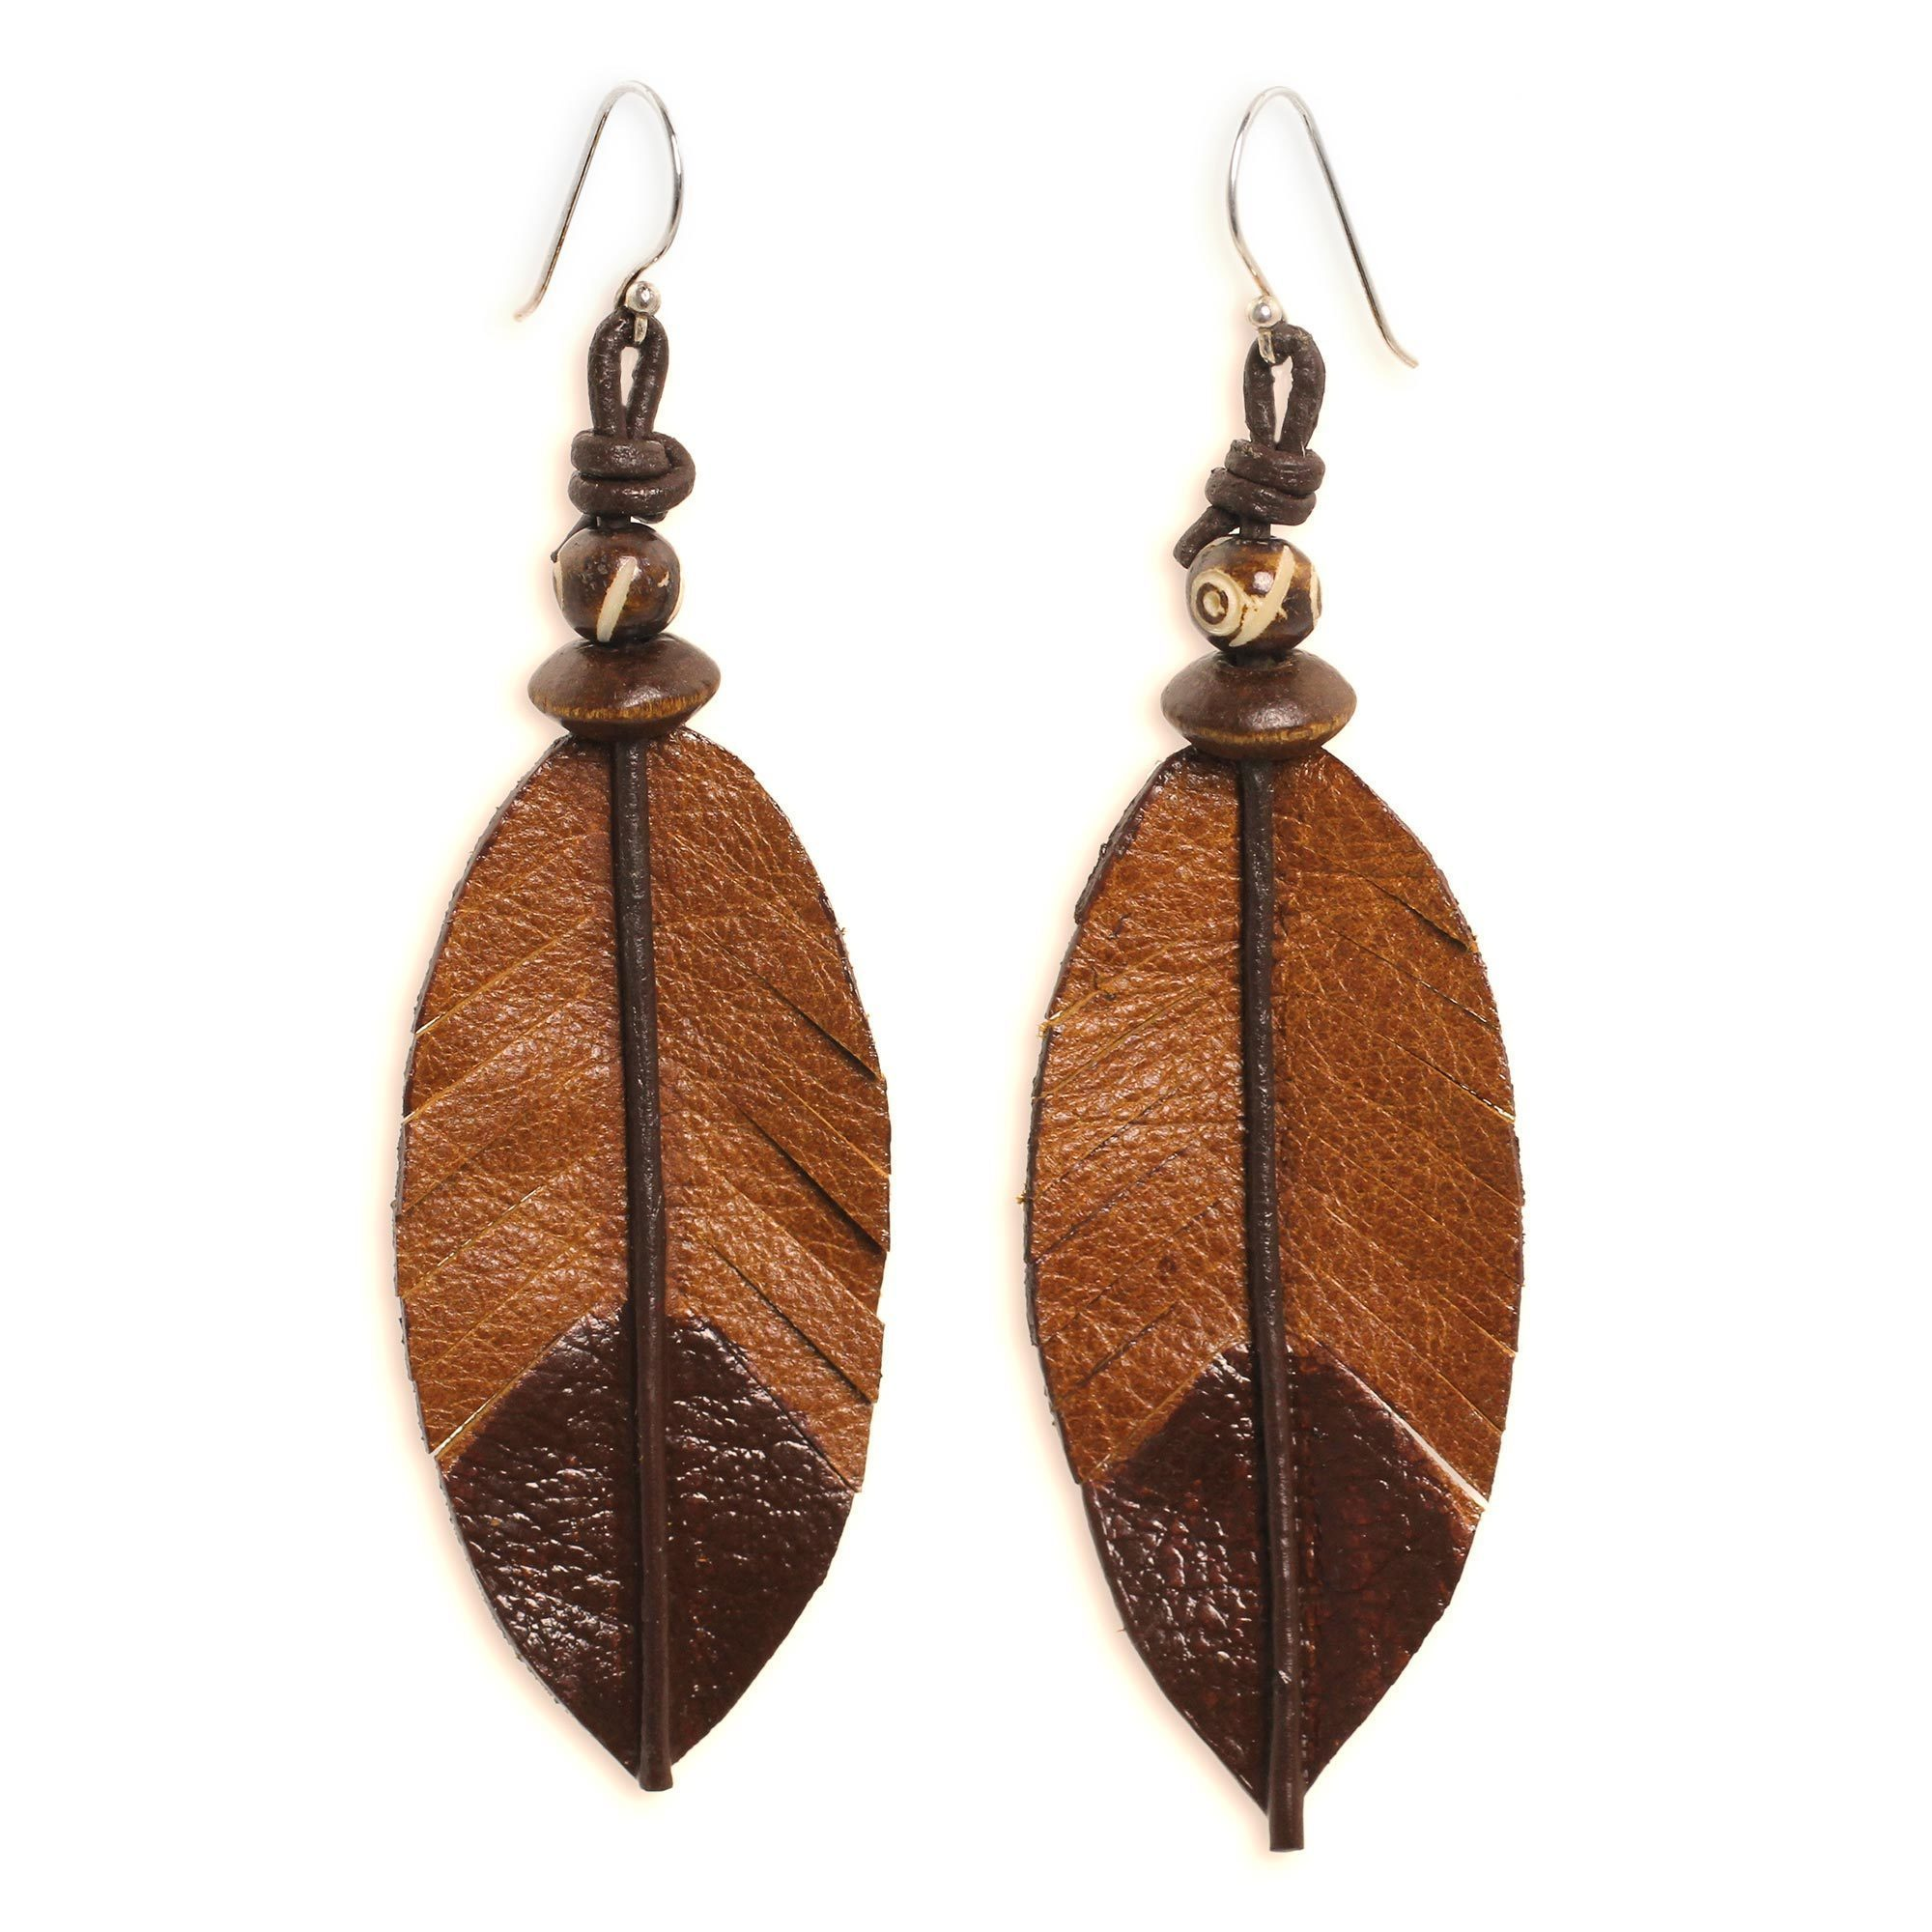 Handmade Leather Bone Indian Feather Earrings Thailand Brown On Free Shipping Orders Over 45 13998556